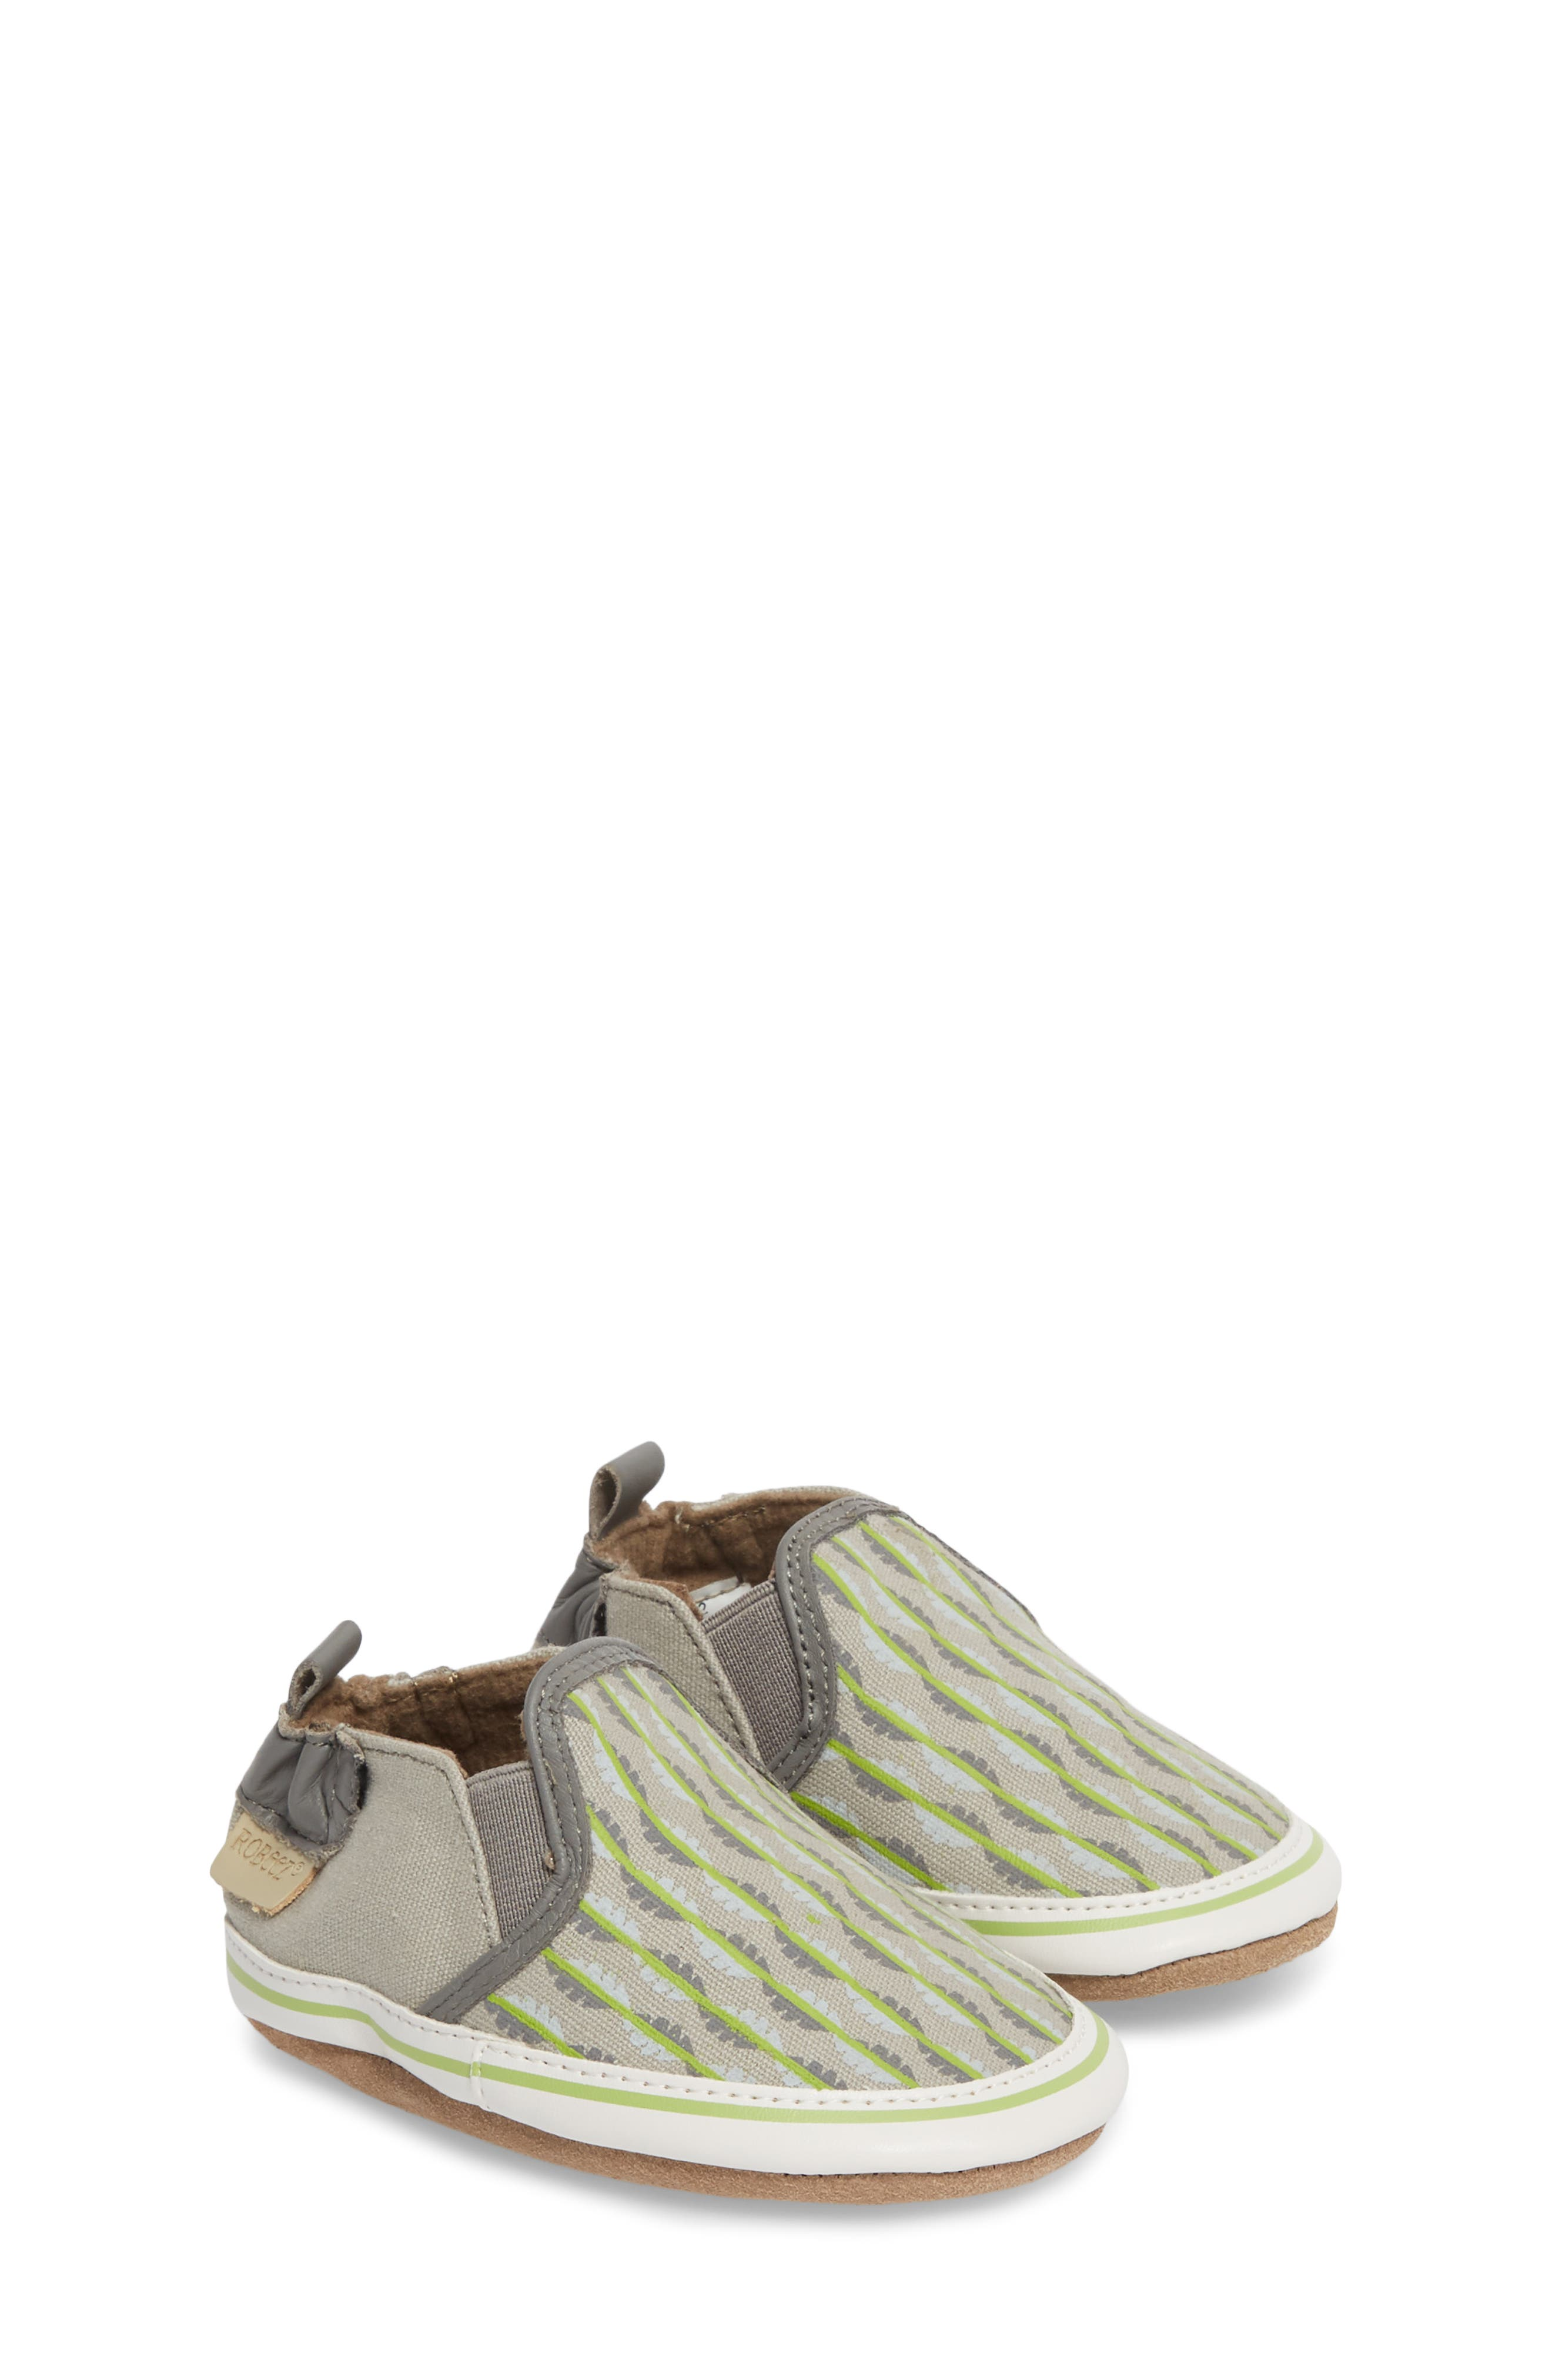 Liam Tropical Print Crib Shoe,                         Main,                         color, GREY